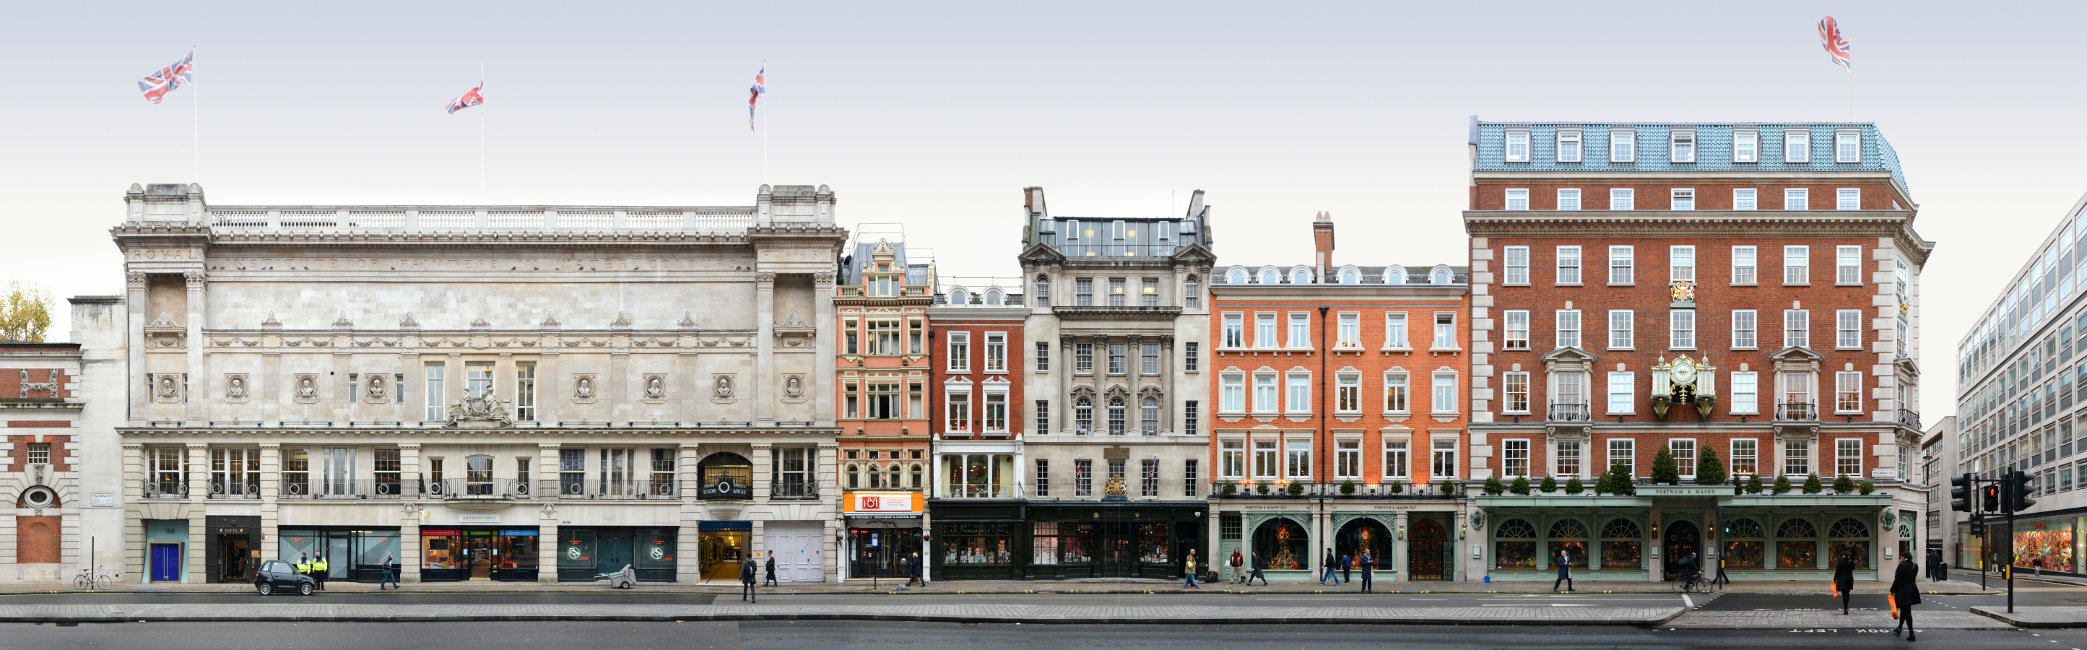 London Picadilly Streetscape Architecture